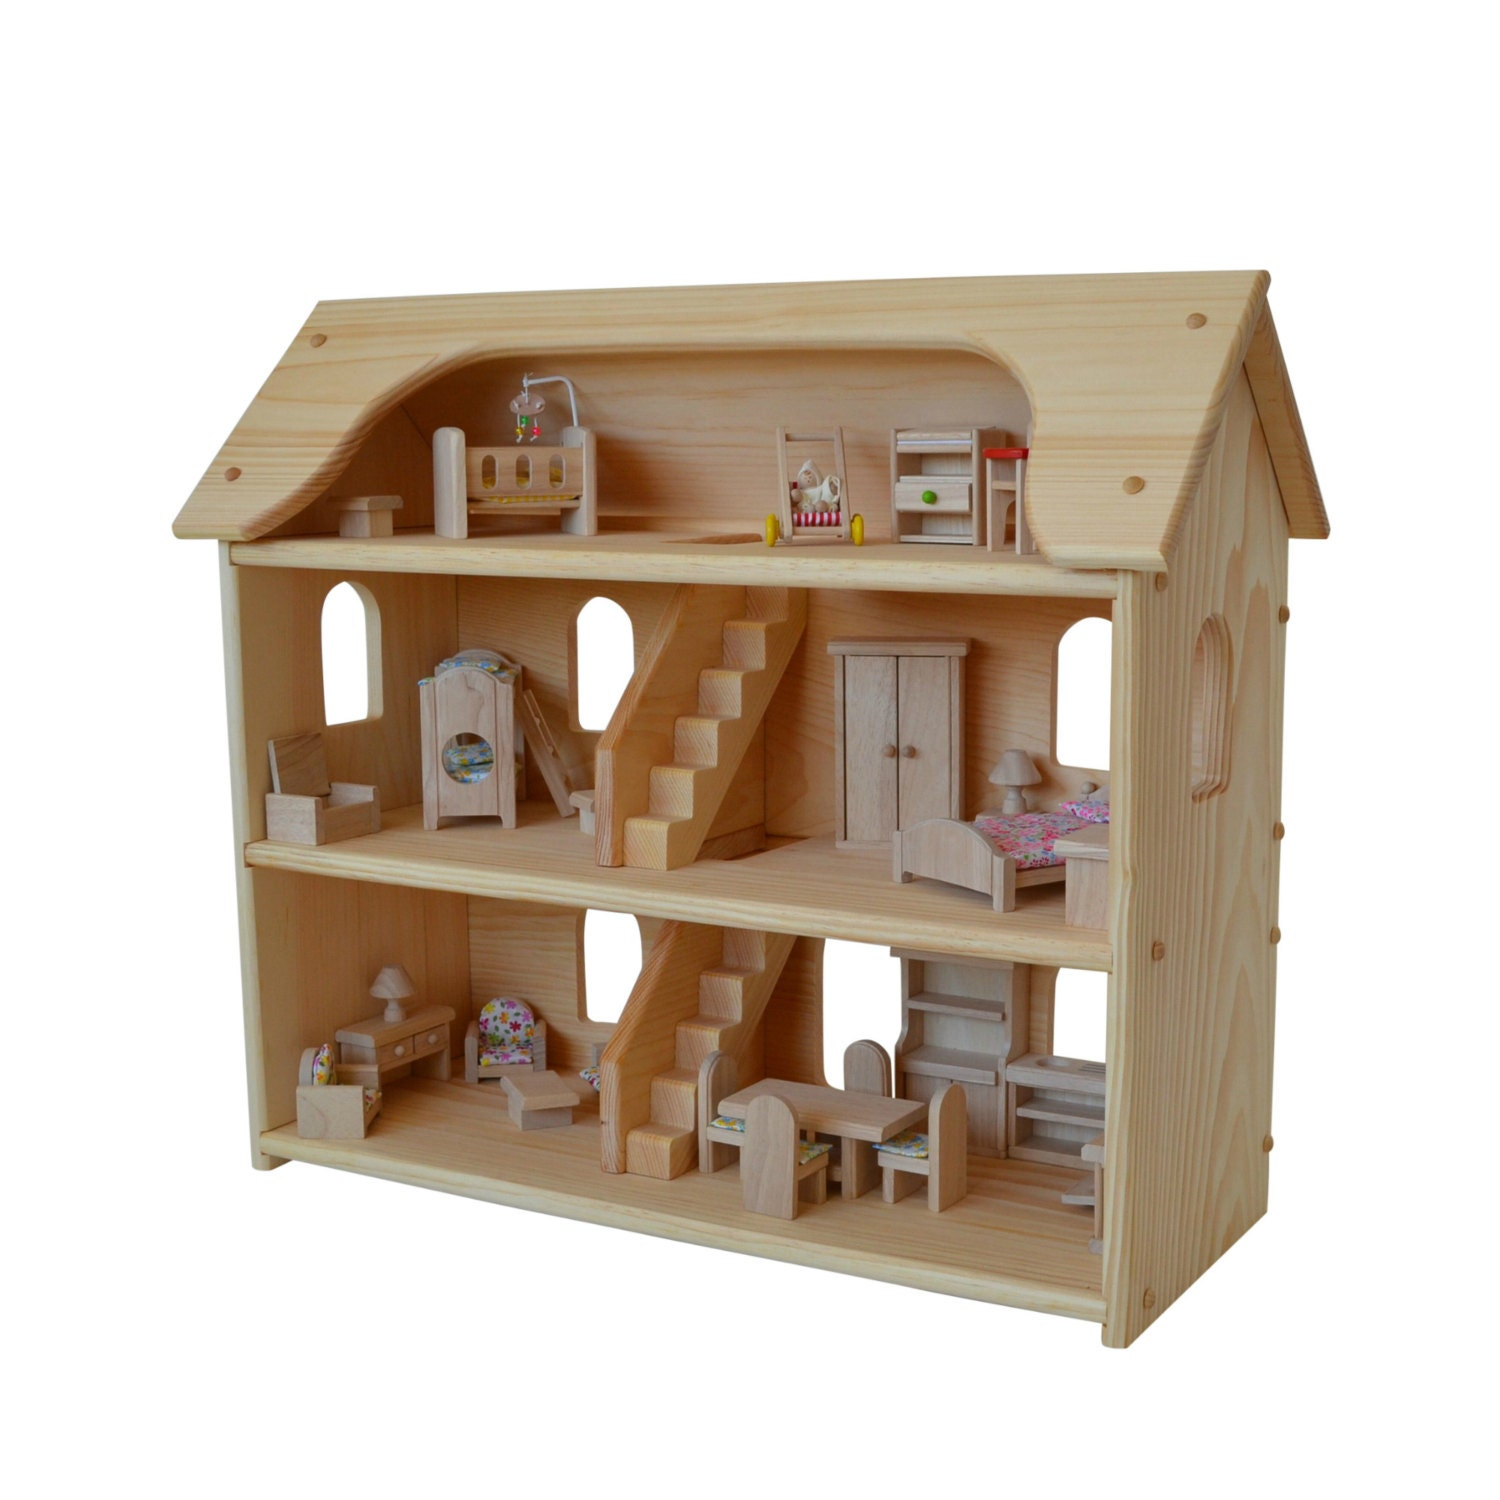 Room Floor Plan Template Handcrafted Natural Wooden Toy Dollhouse Set Waldorf